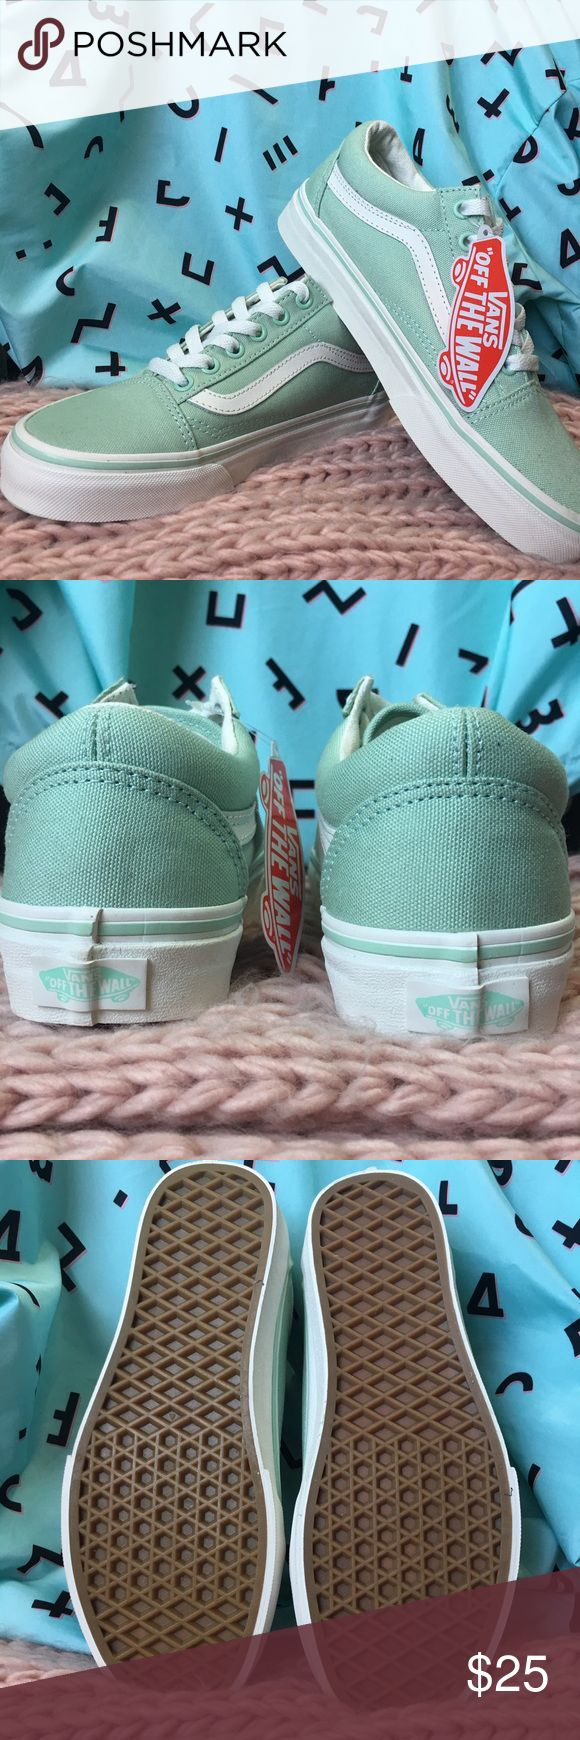 Mint vans Size 6 vans in a pastel mint green. Never worn and new with tags. Perfect for this spring 🌷Price is firm. 🌷 Vans Shoes Sneakers